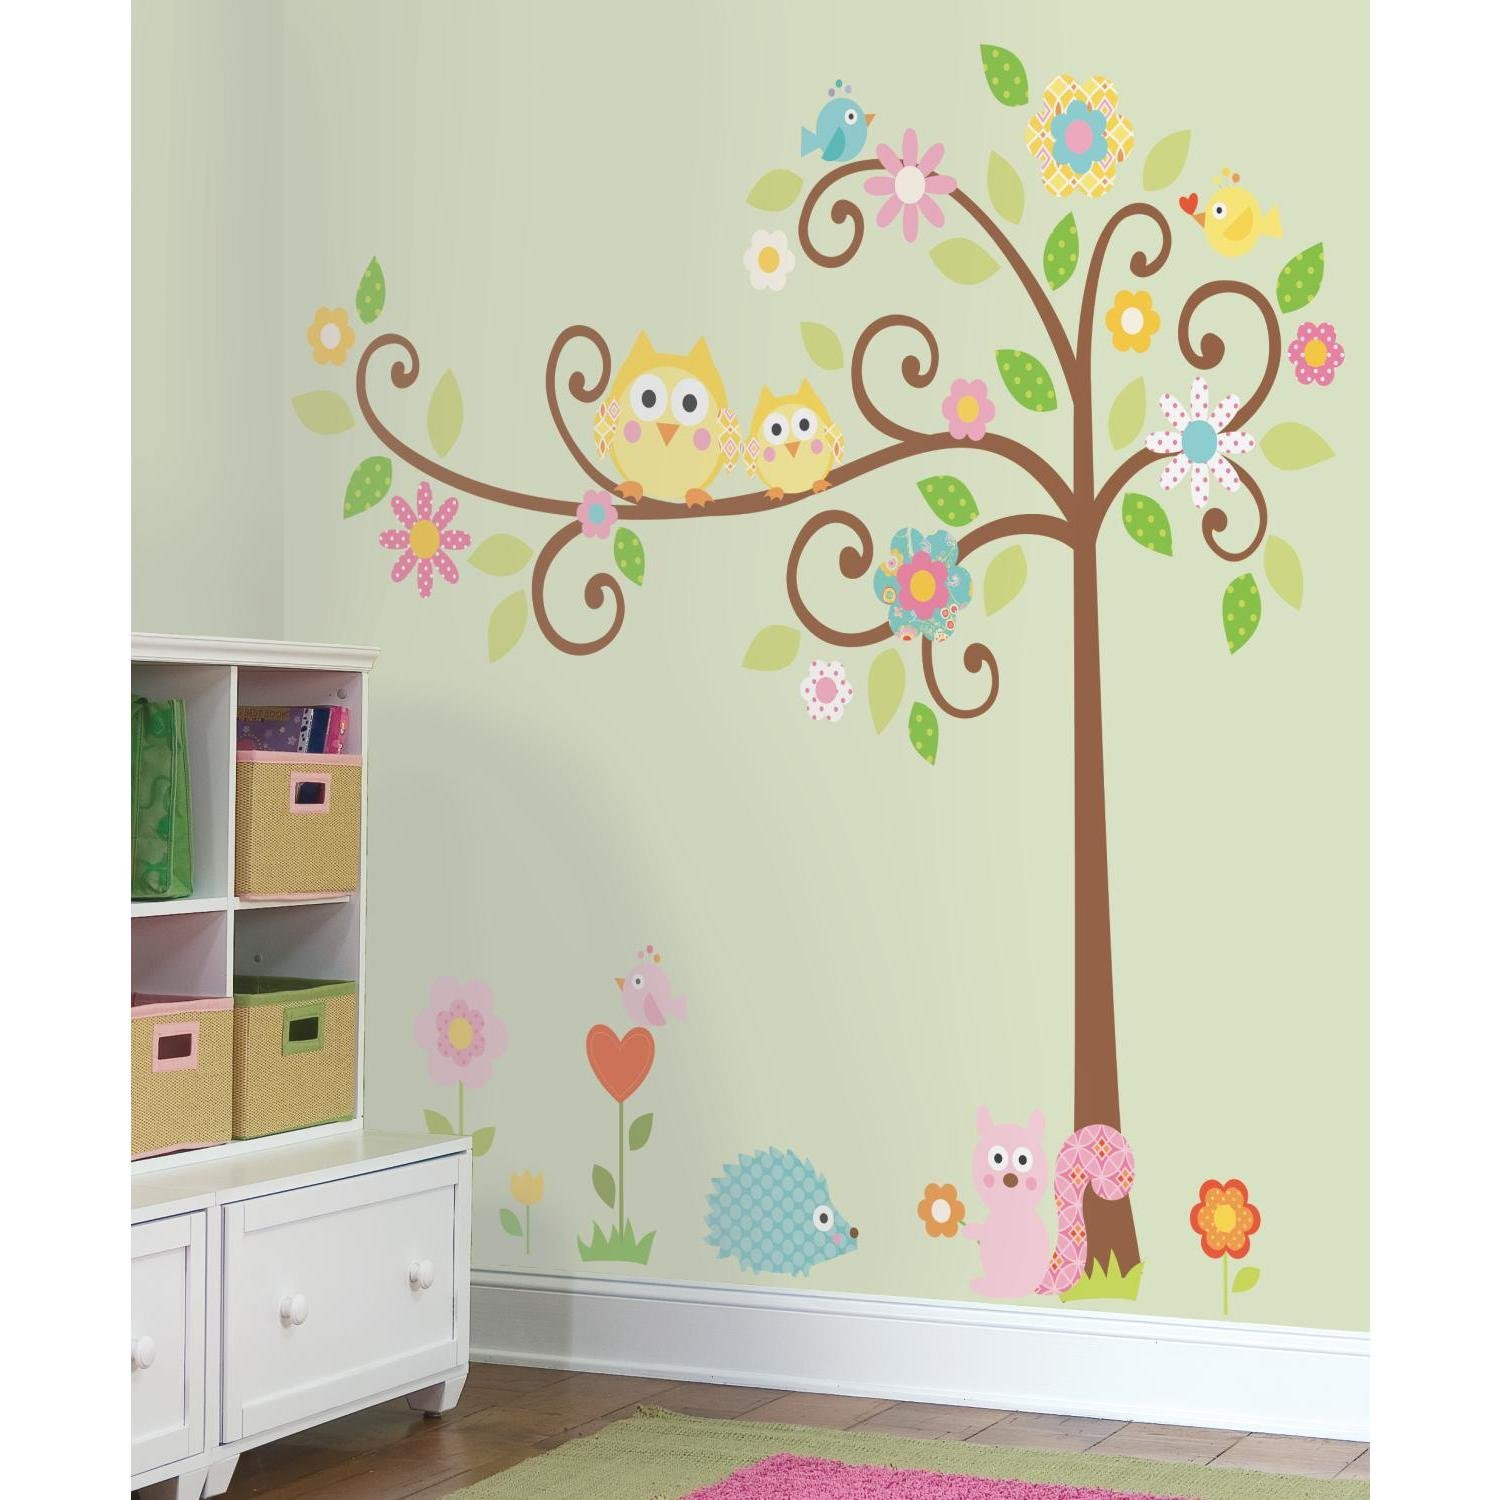 scroll-tree-wall-decal-set.jpg